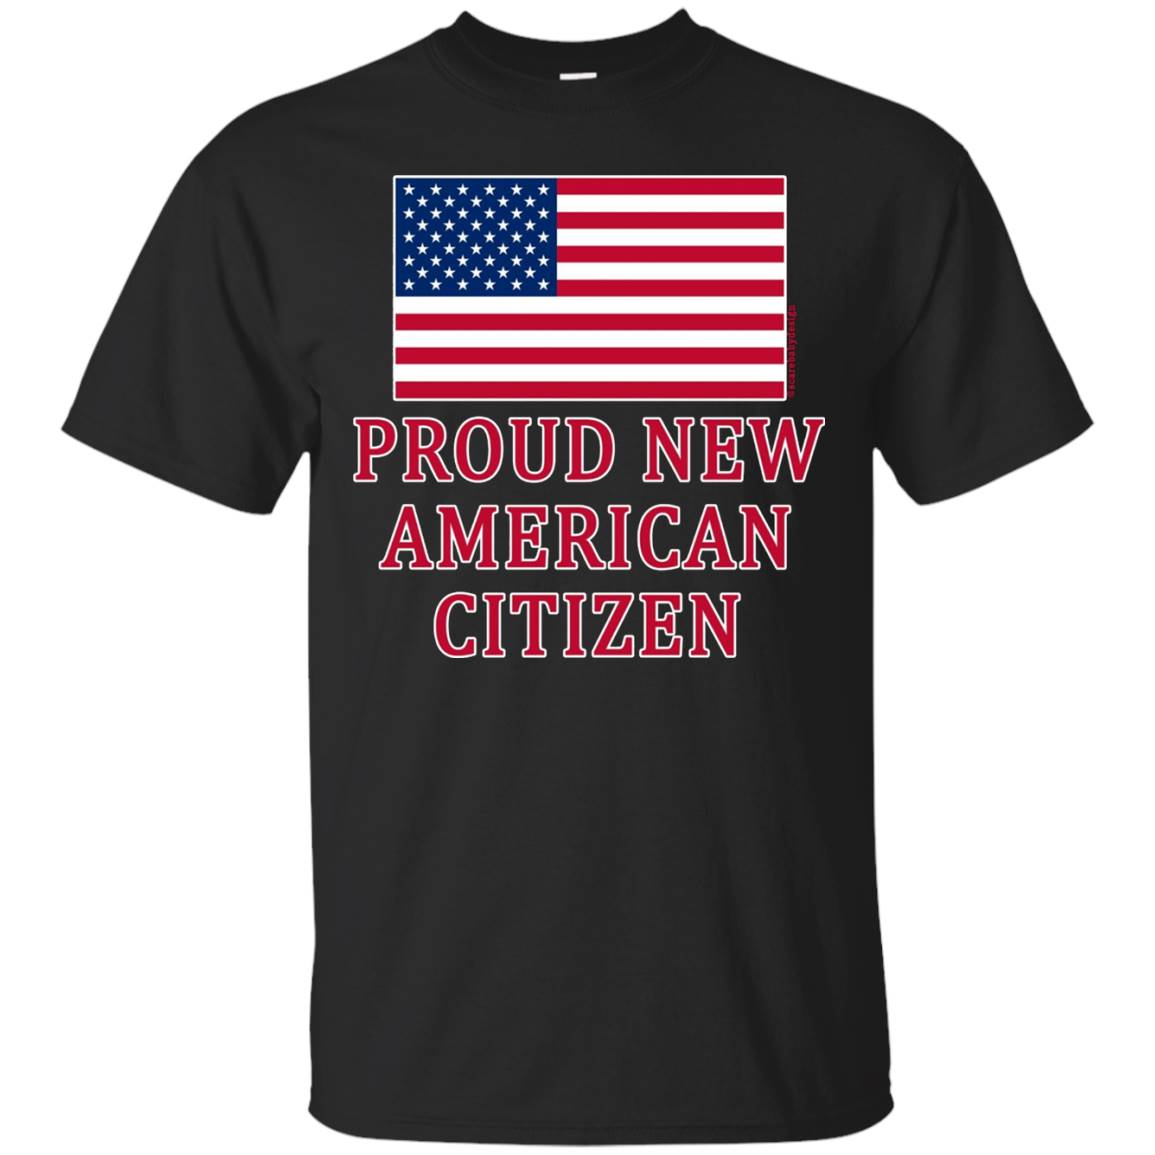 Proud New American Citizen Tshirt for New American Citizens